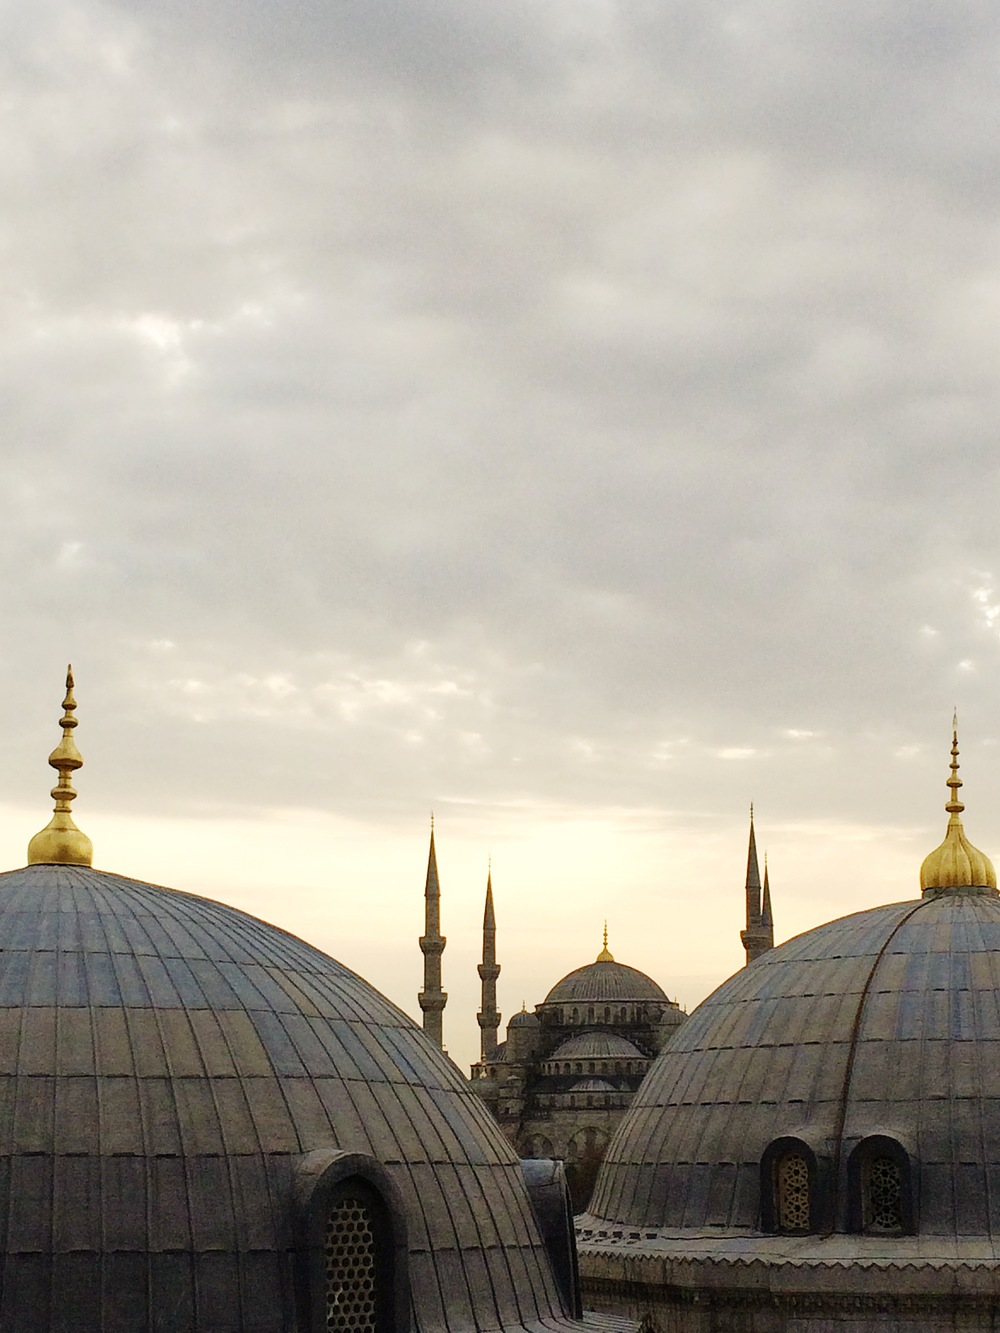 View of the Blue Mosque taken from inside the Aya Sophia. They look across at each other. It is a stunning sight at dusk